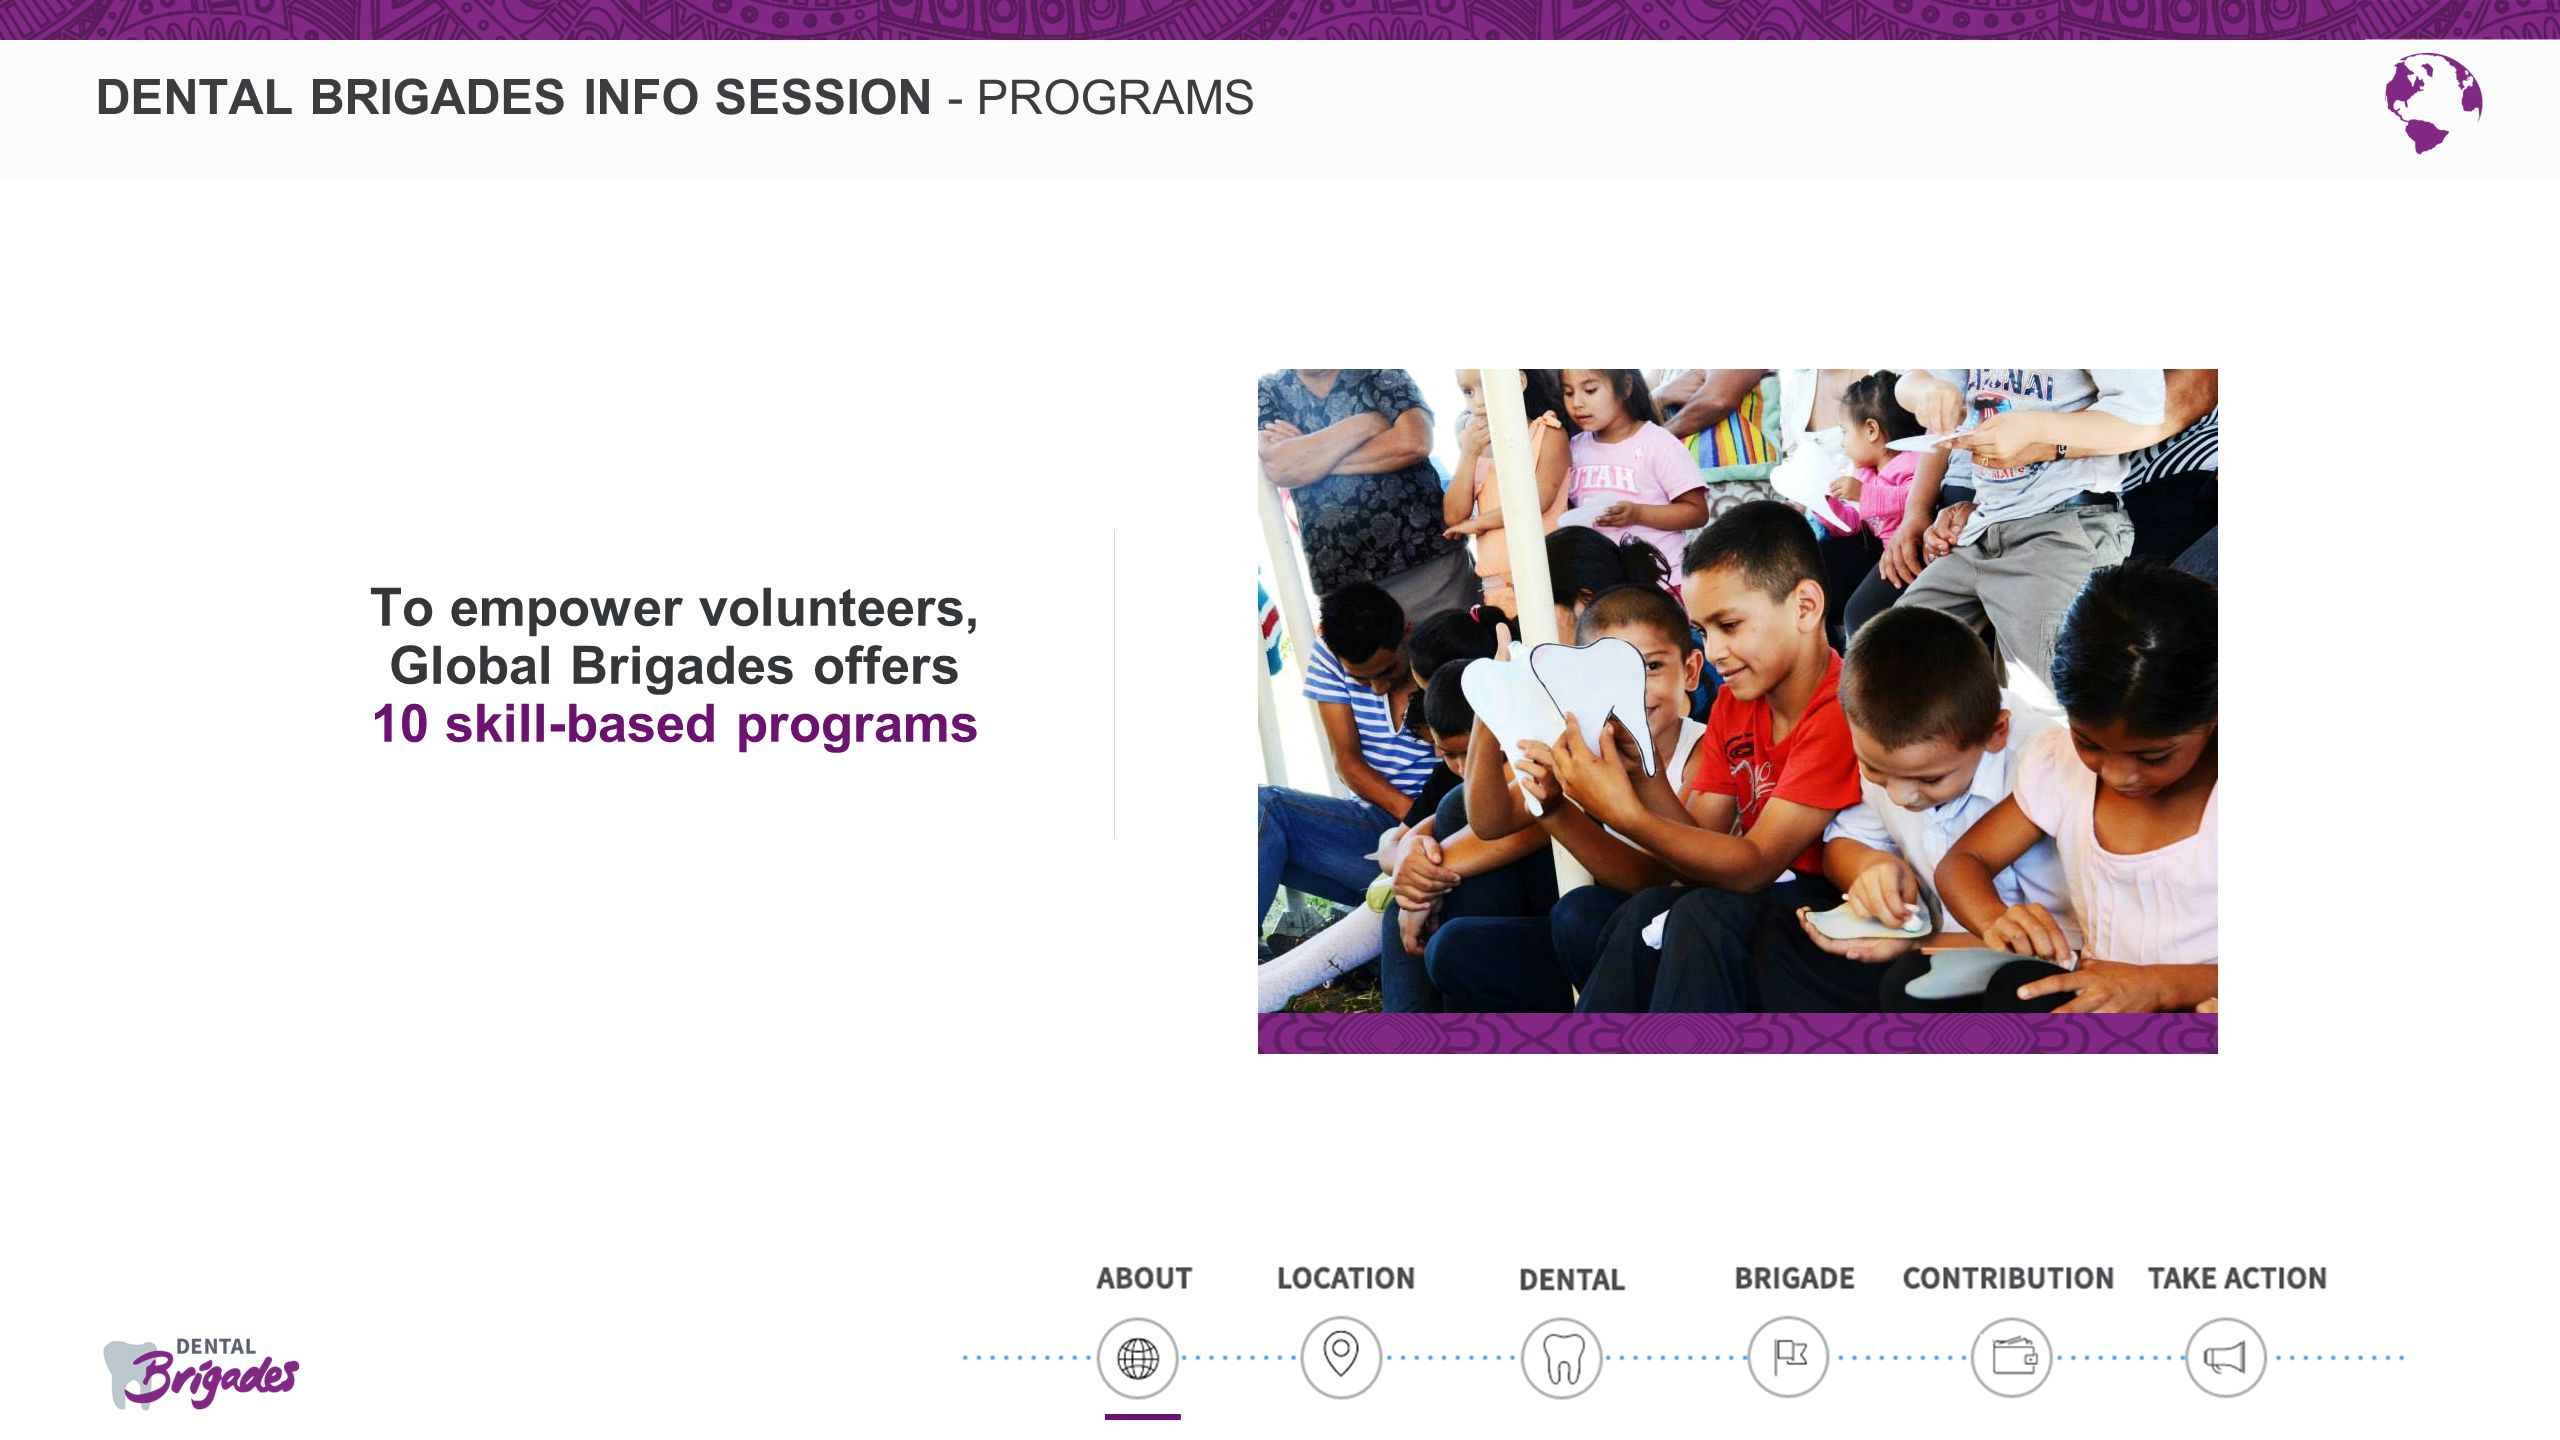 DENTAL BRIGADES INFO SESSION – WHAT IS DENTAL BRIGADES.